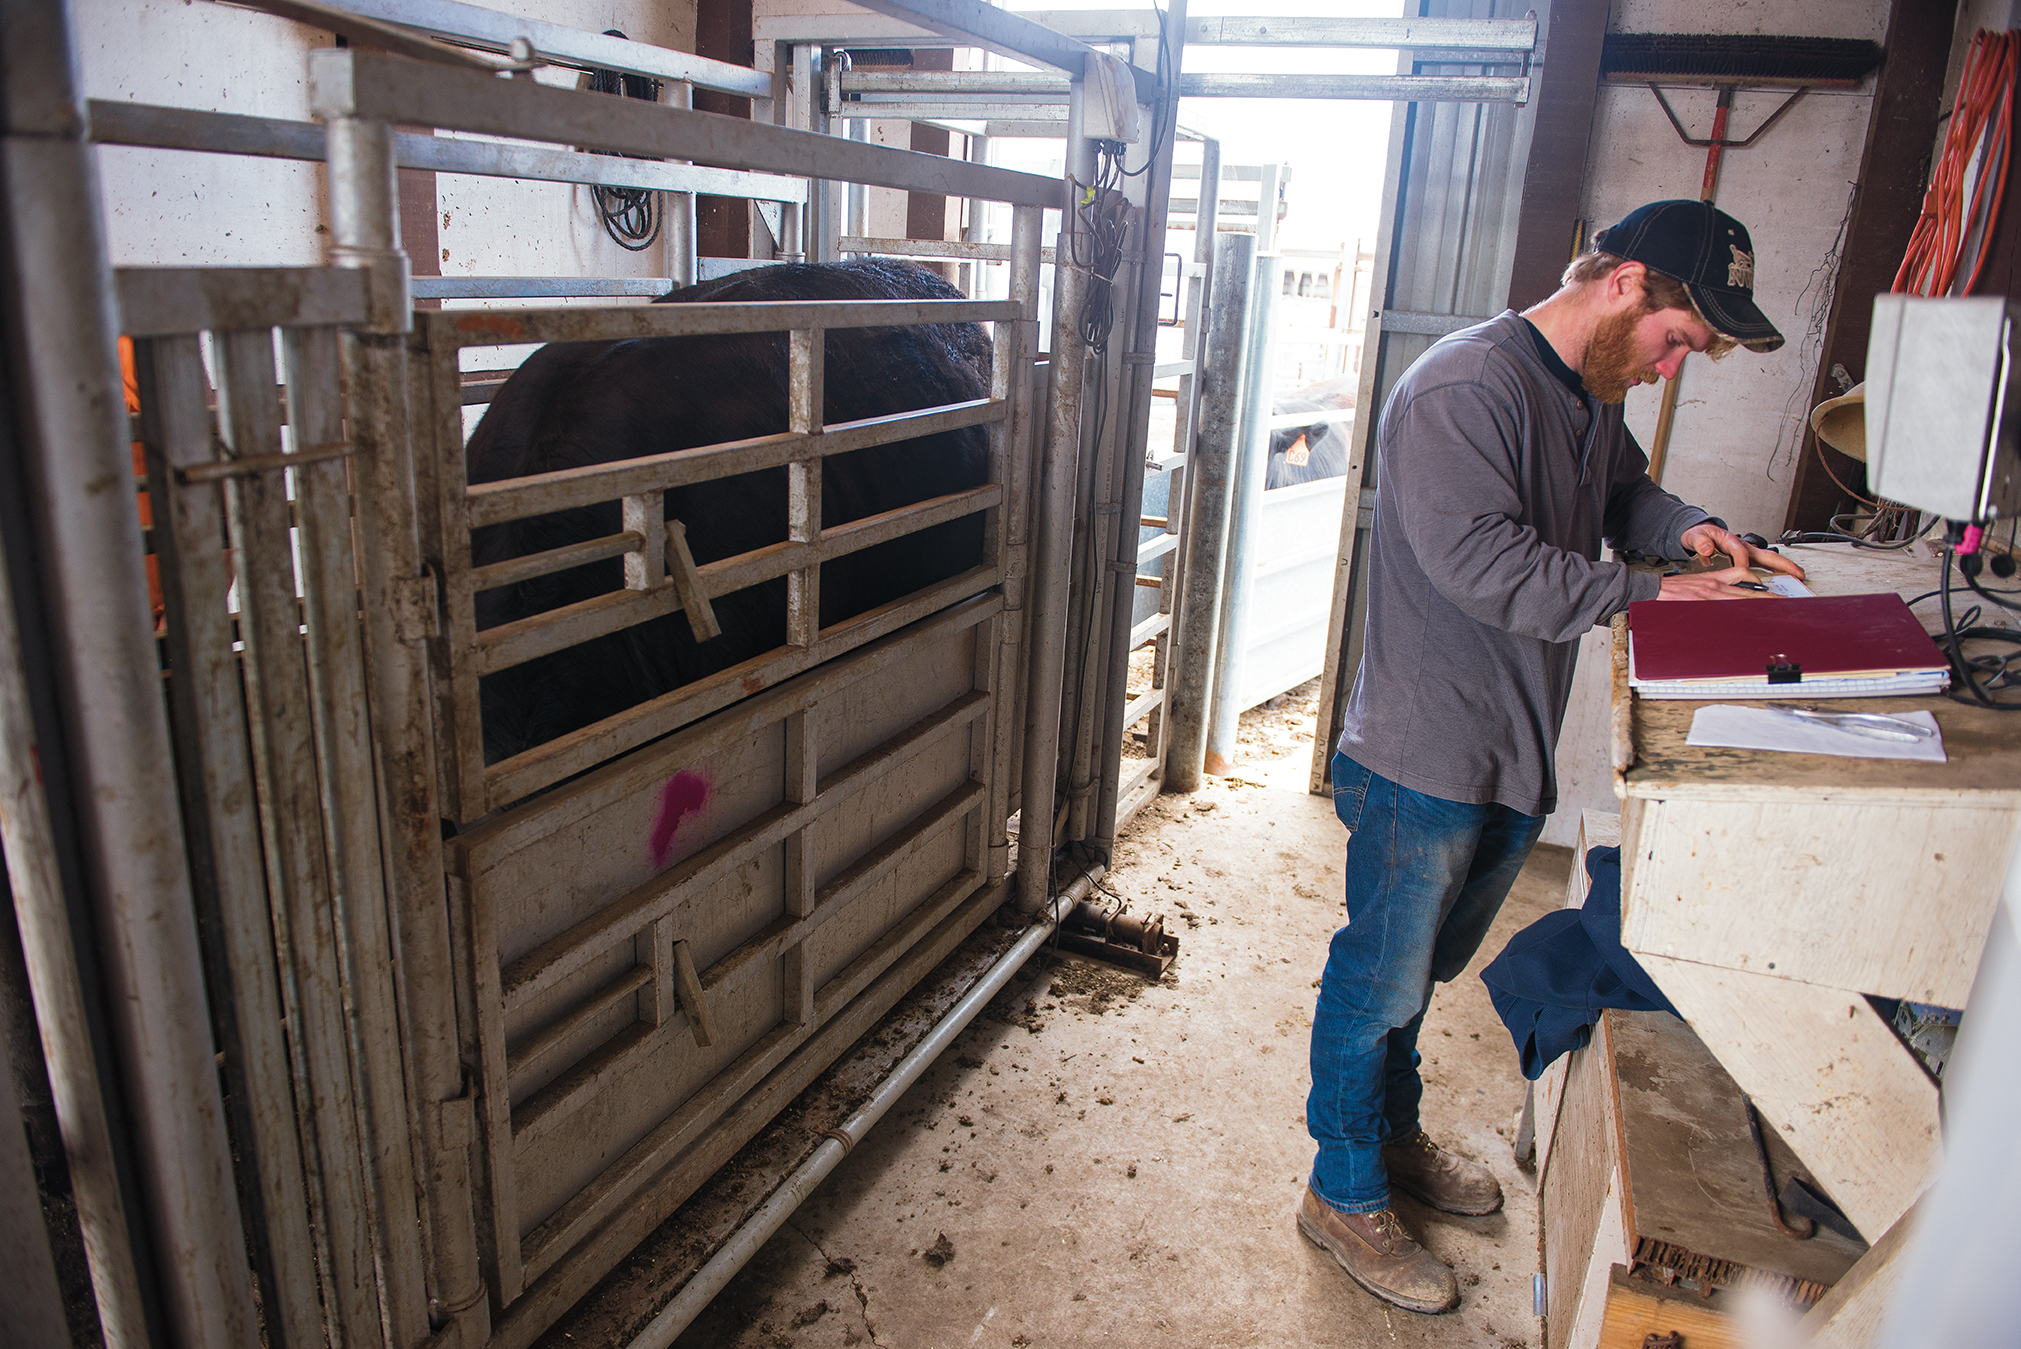 Each animal was weighed every 28 days during the study. The cattle grew, on average, to about 1,430 pounds by the time they went to market.